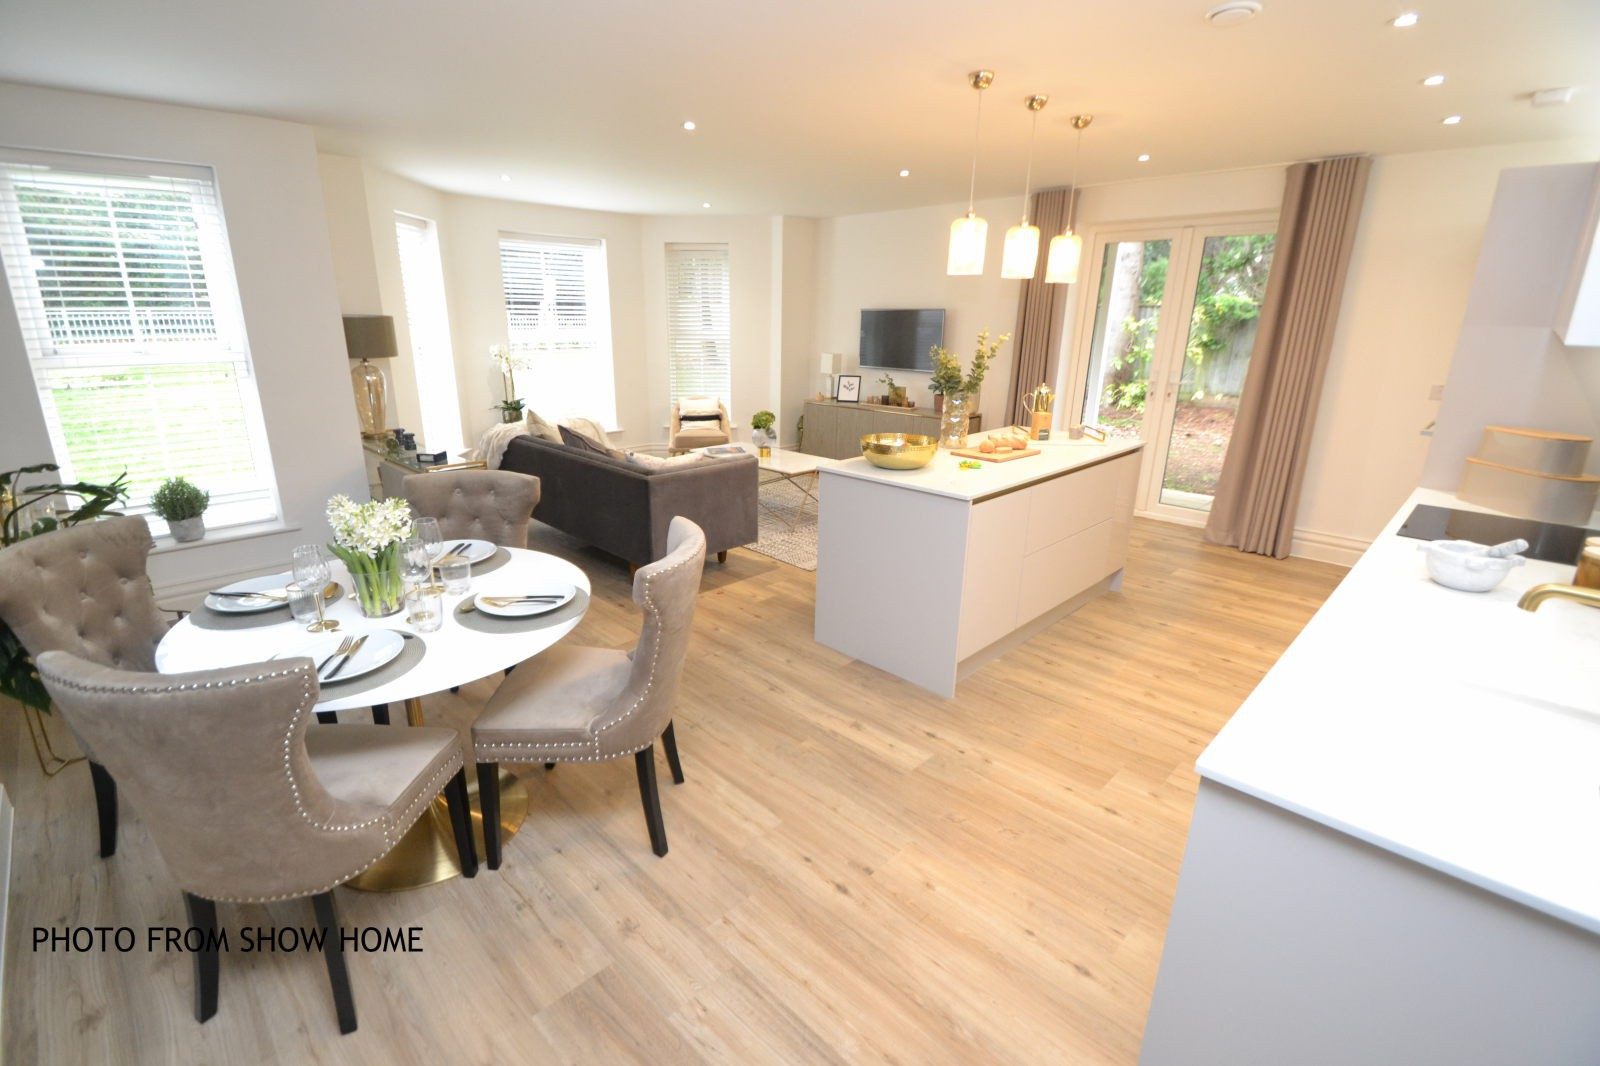 Flat 3, 30 Tower Road, Branksome Park, Poole